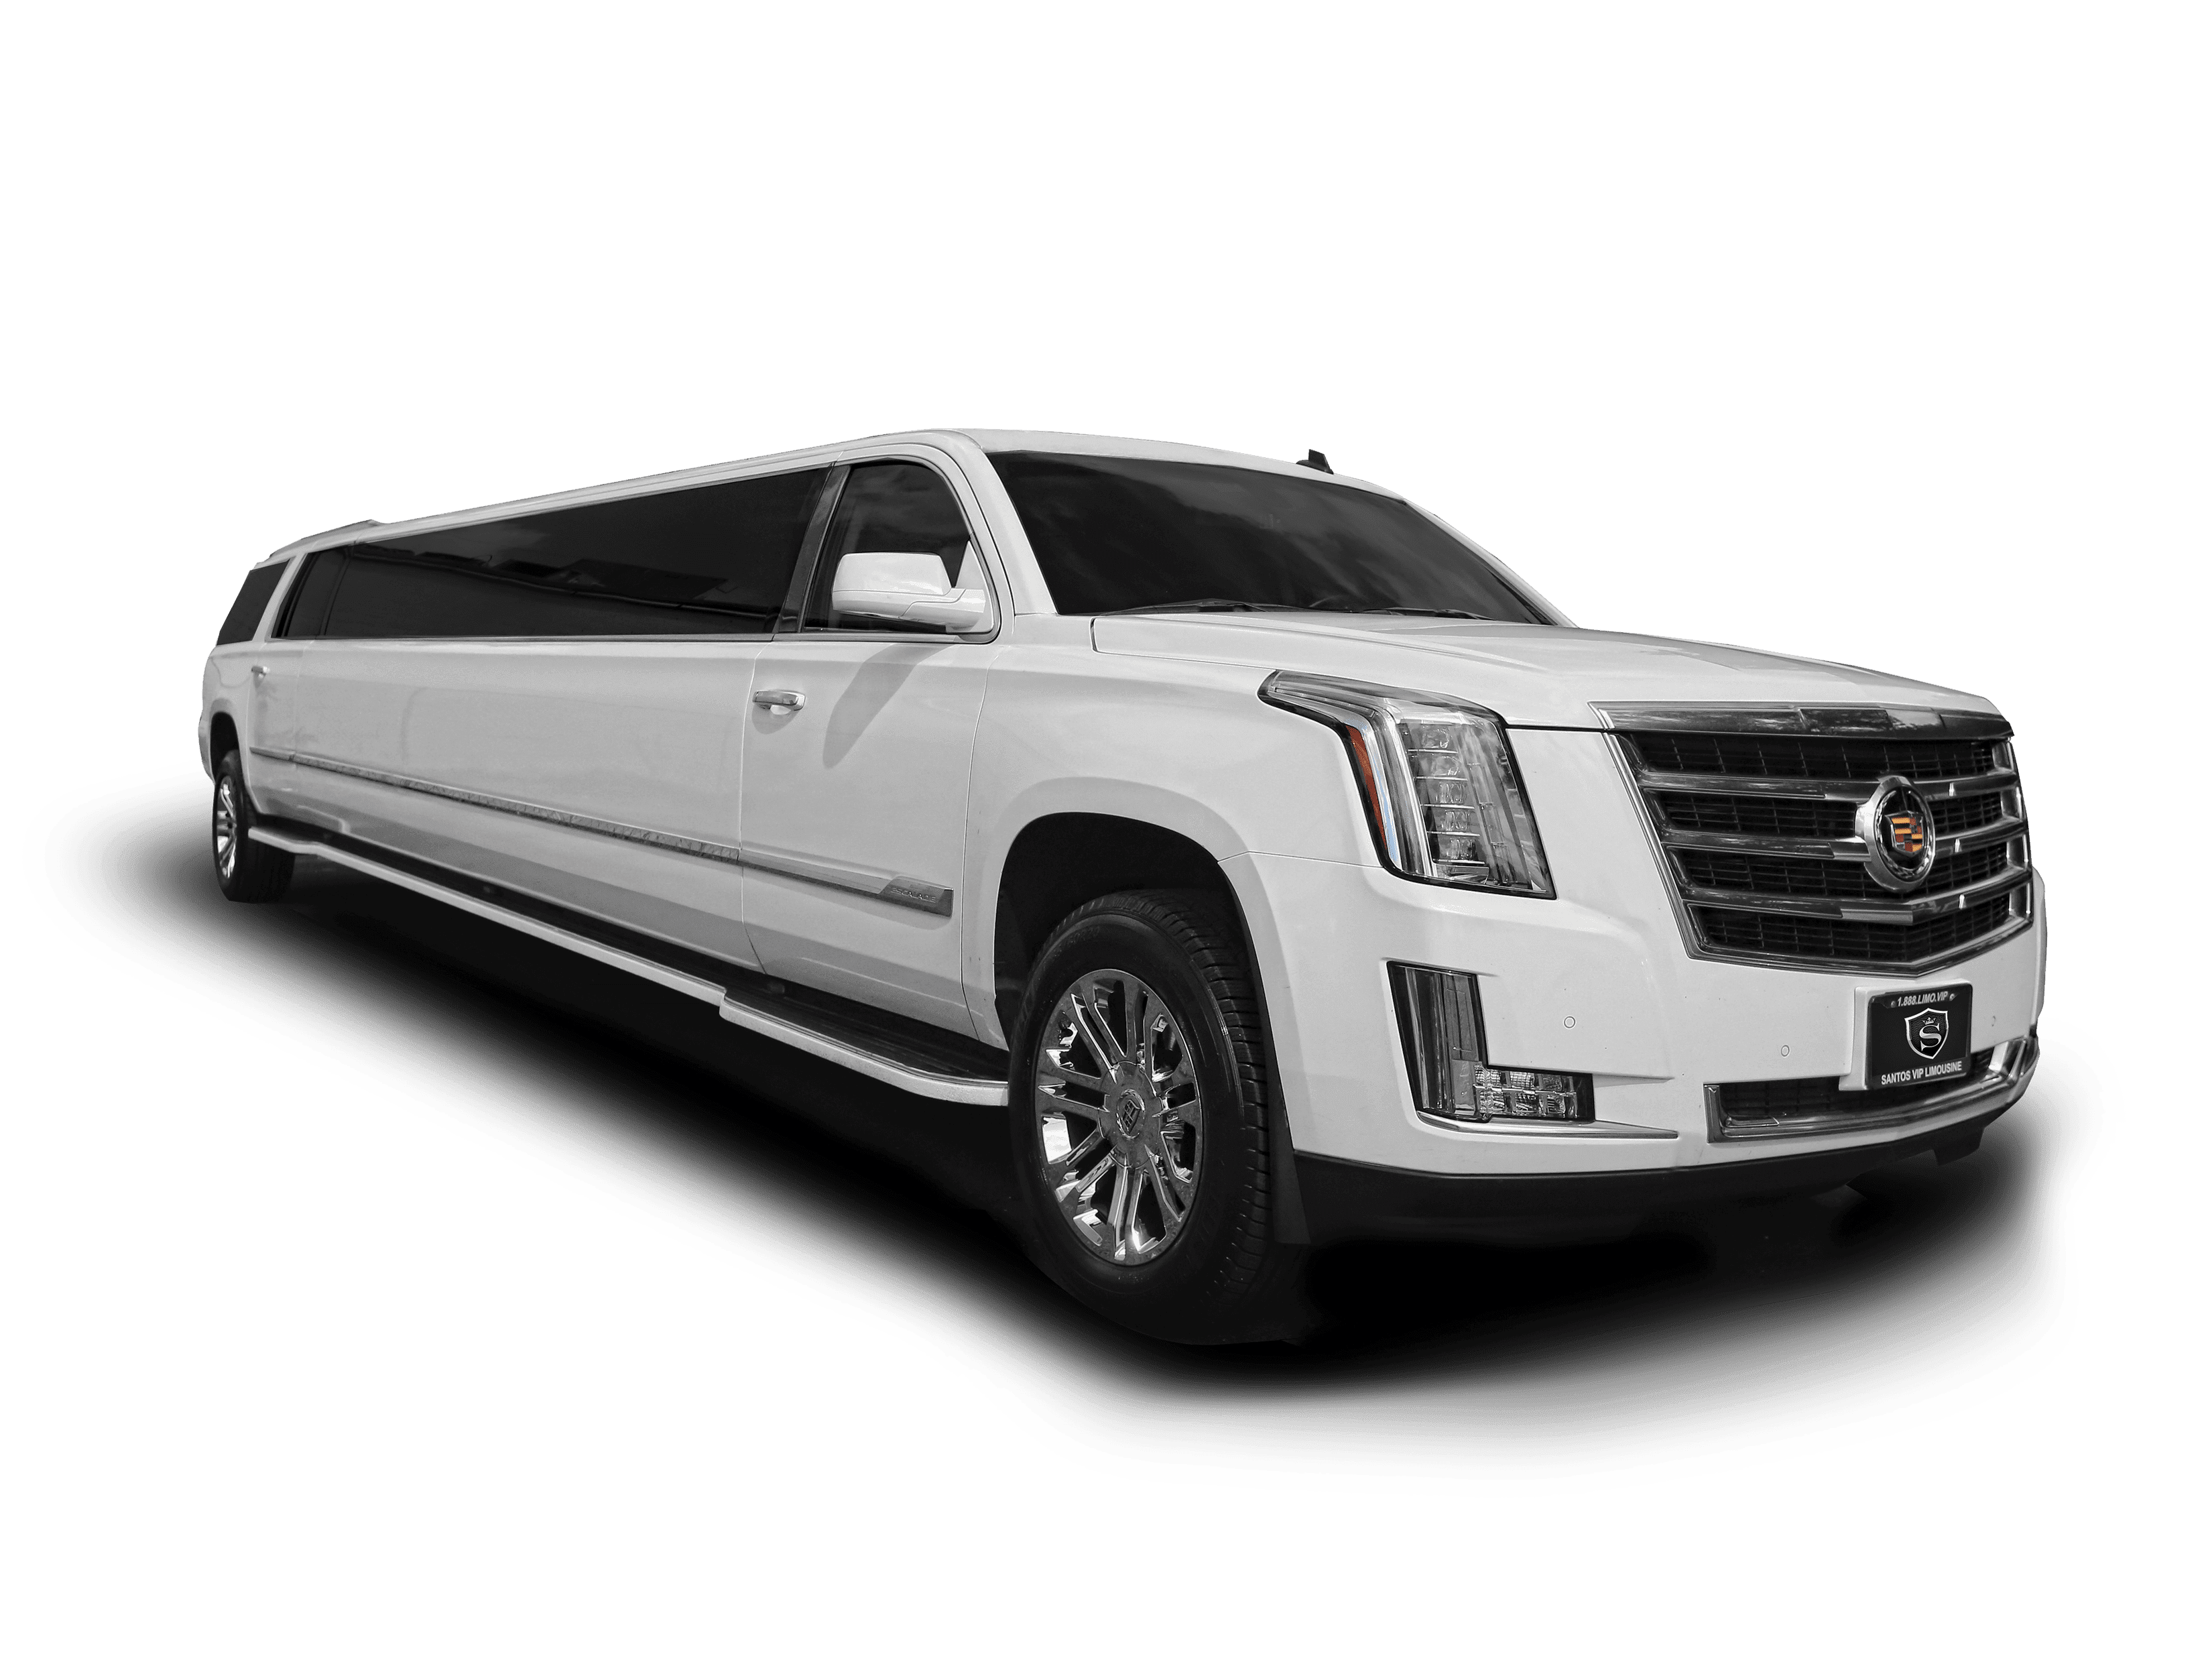 Cadillac Escalade ESV limousine for NJ - NY Bachelor Party